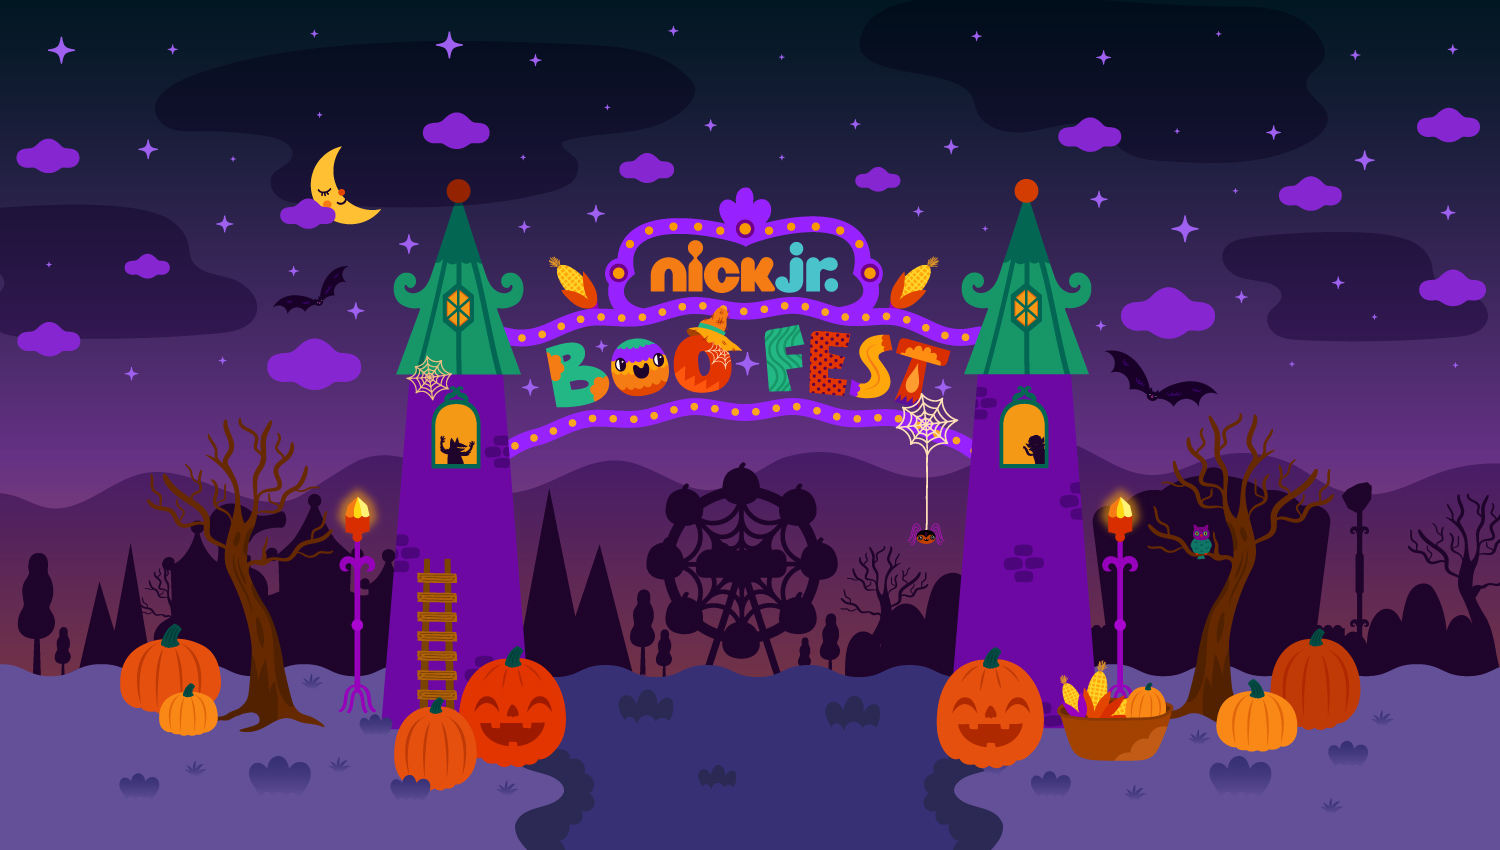 Nick Jr. TV Halloween Campaign — Muxxi